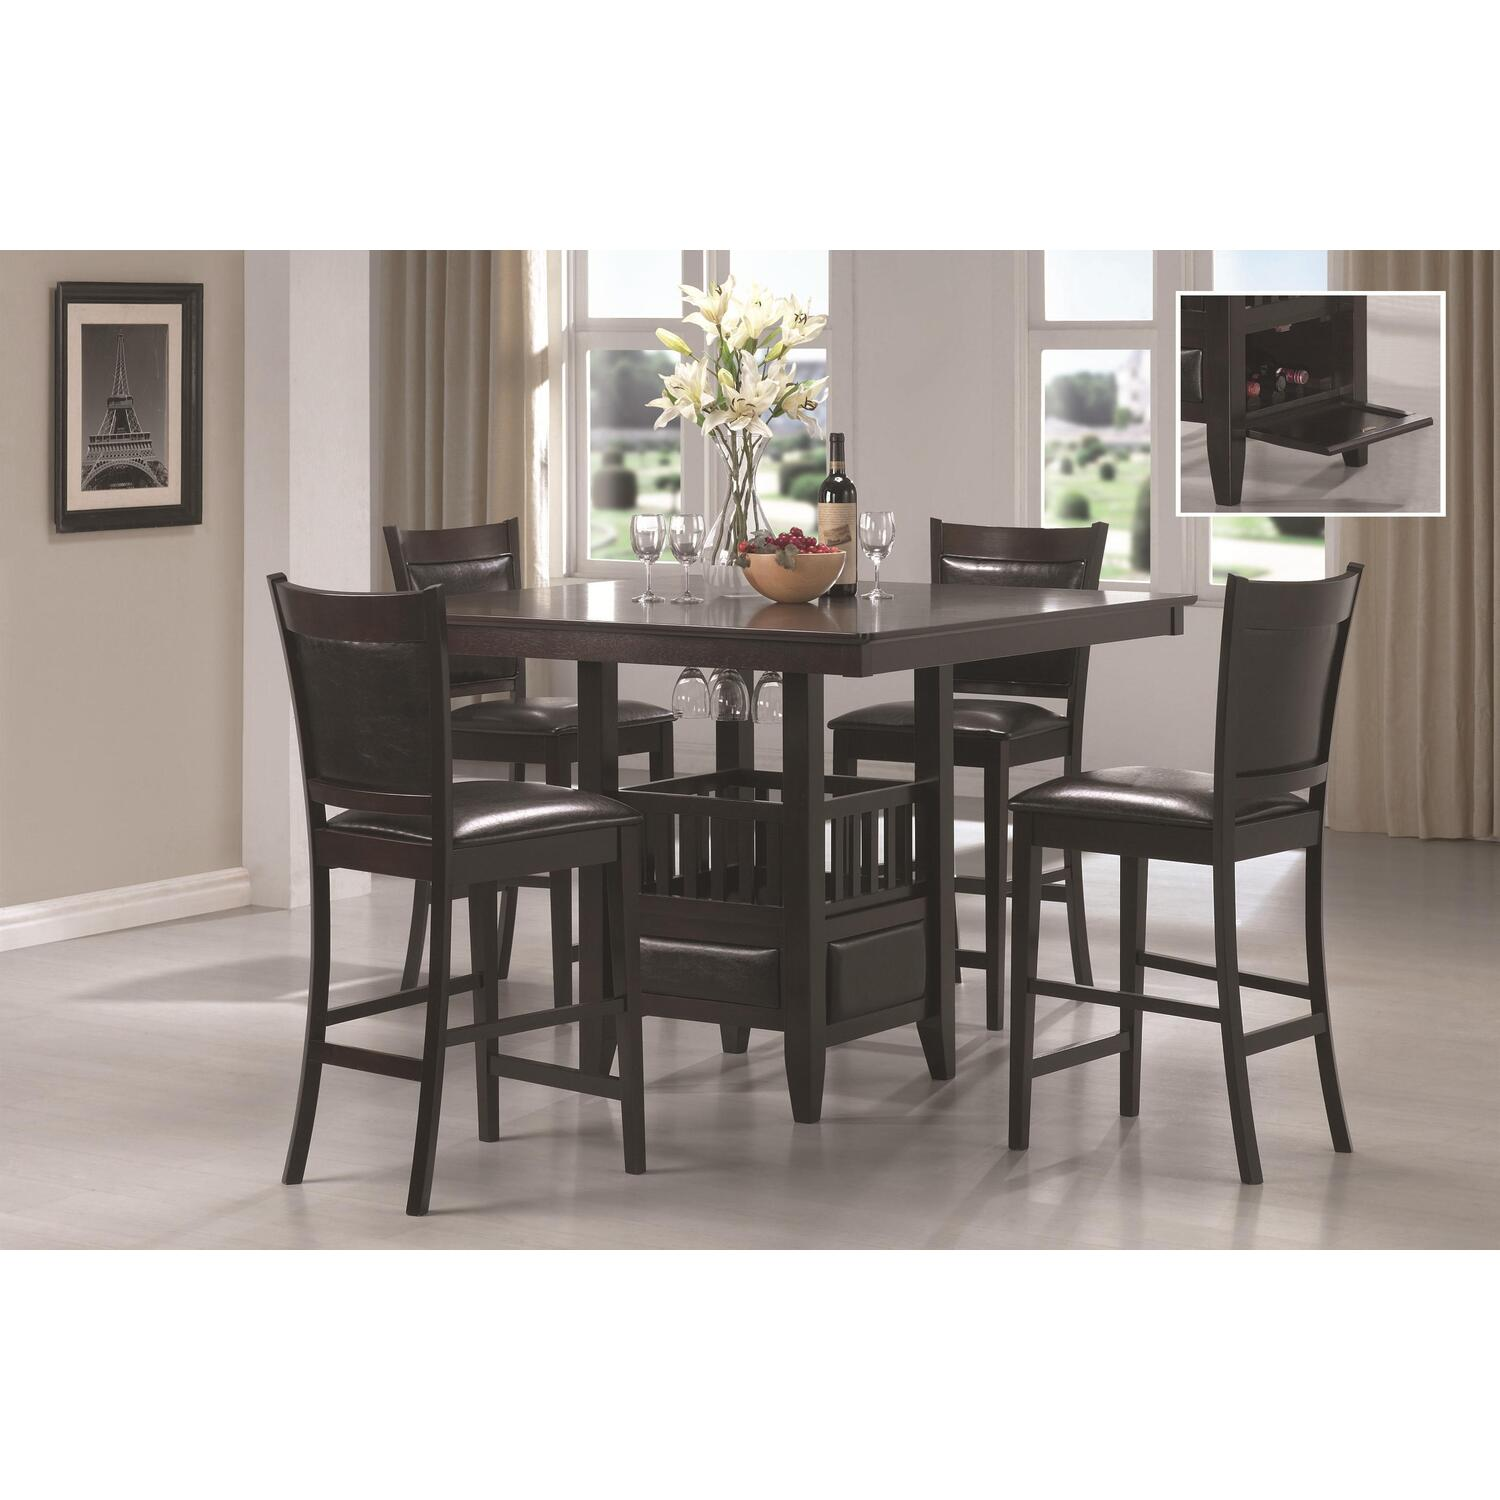 Hollywood Home Jaden Square Counter Height 5 Piece Dining Set By OJ